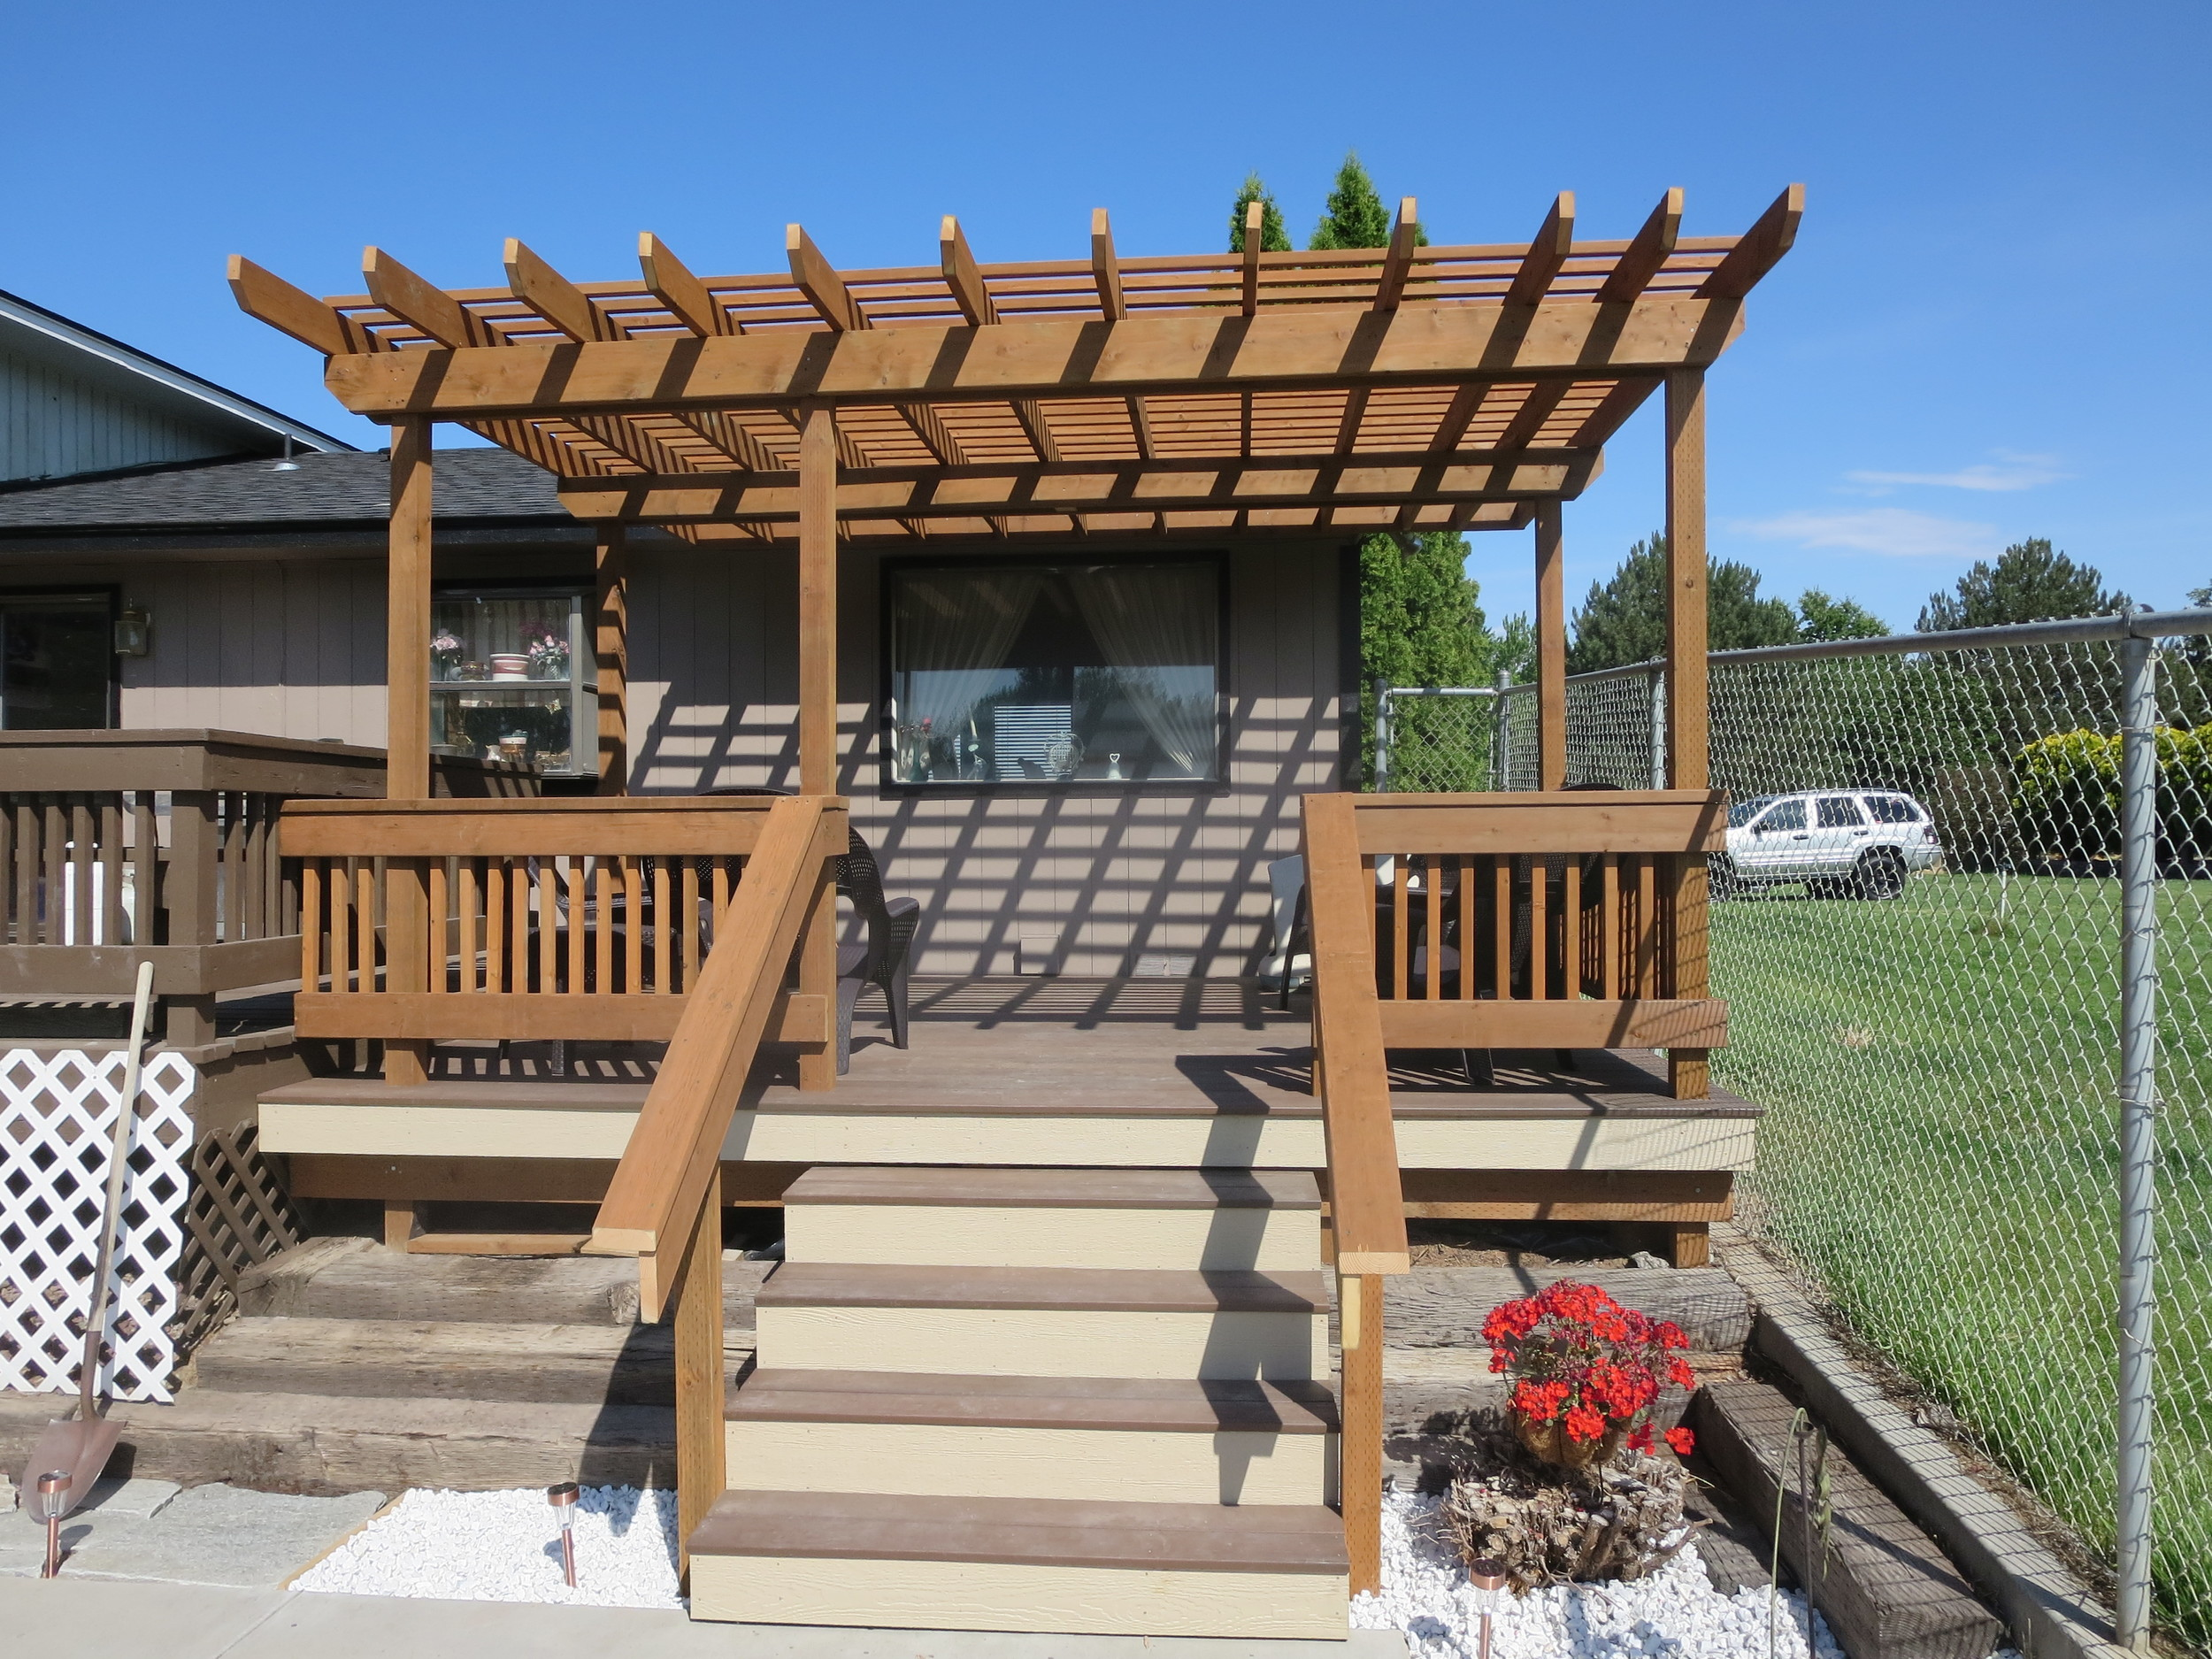 A brand new deck and pergola were constructed for enjoying the Tri-City summer days in this homeowner's backyard!